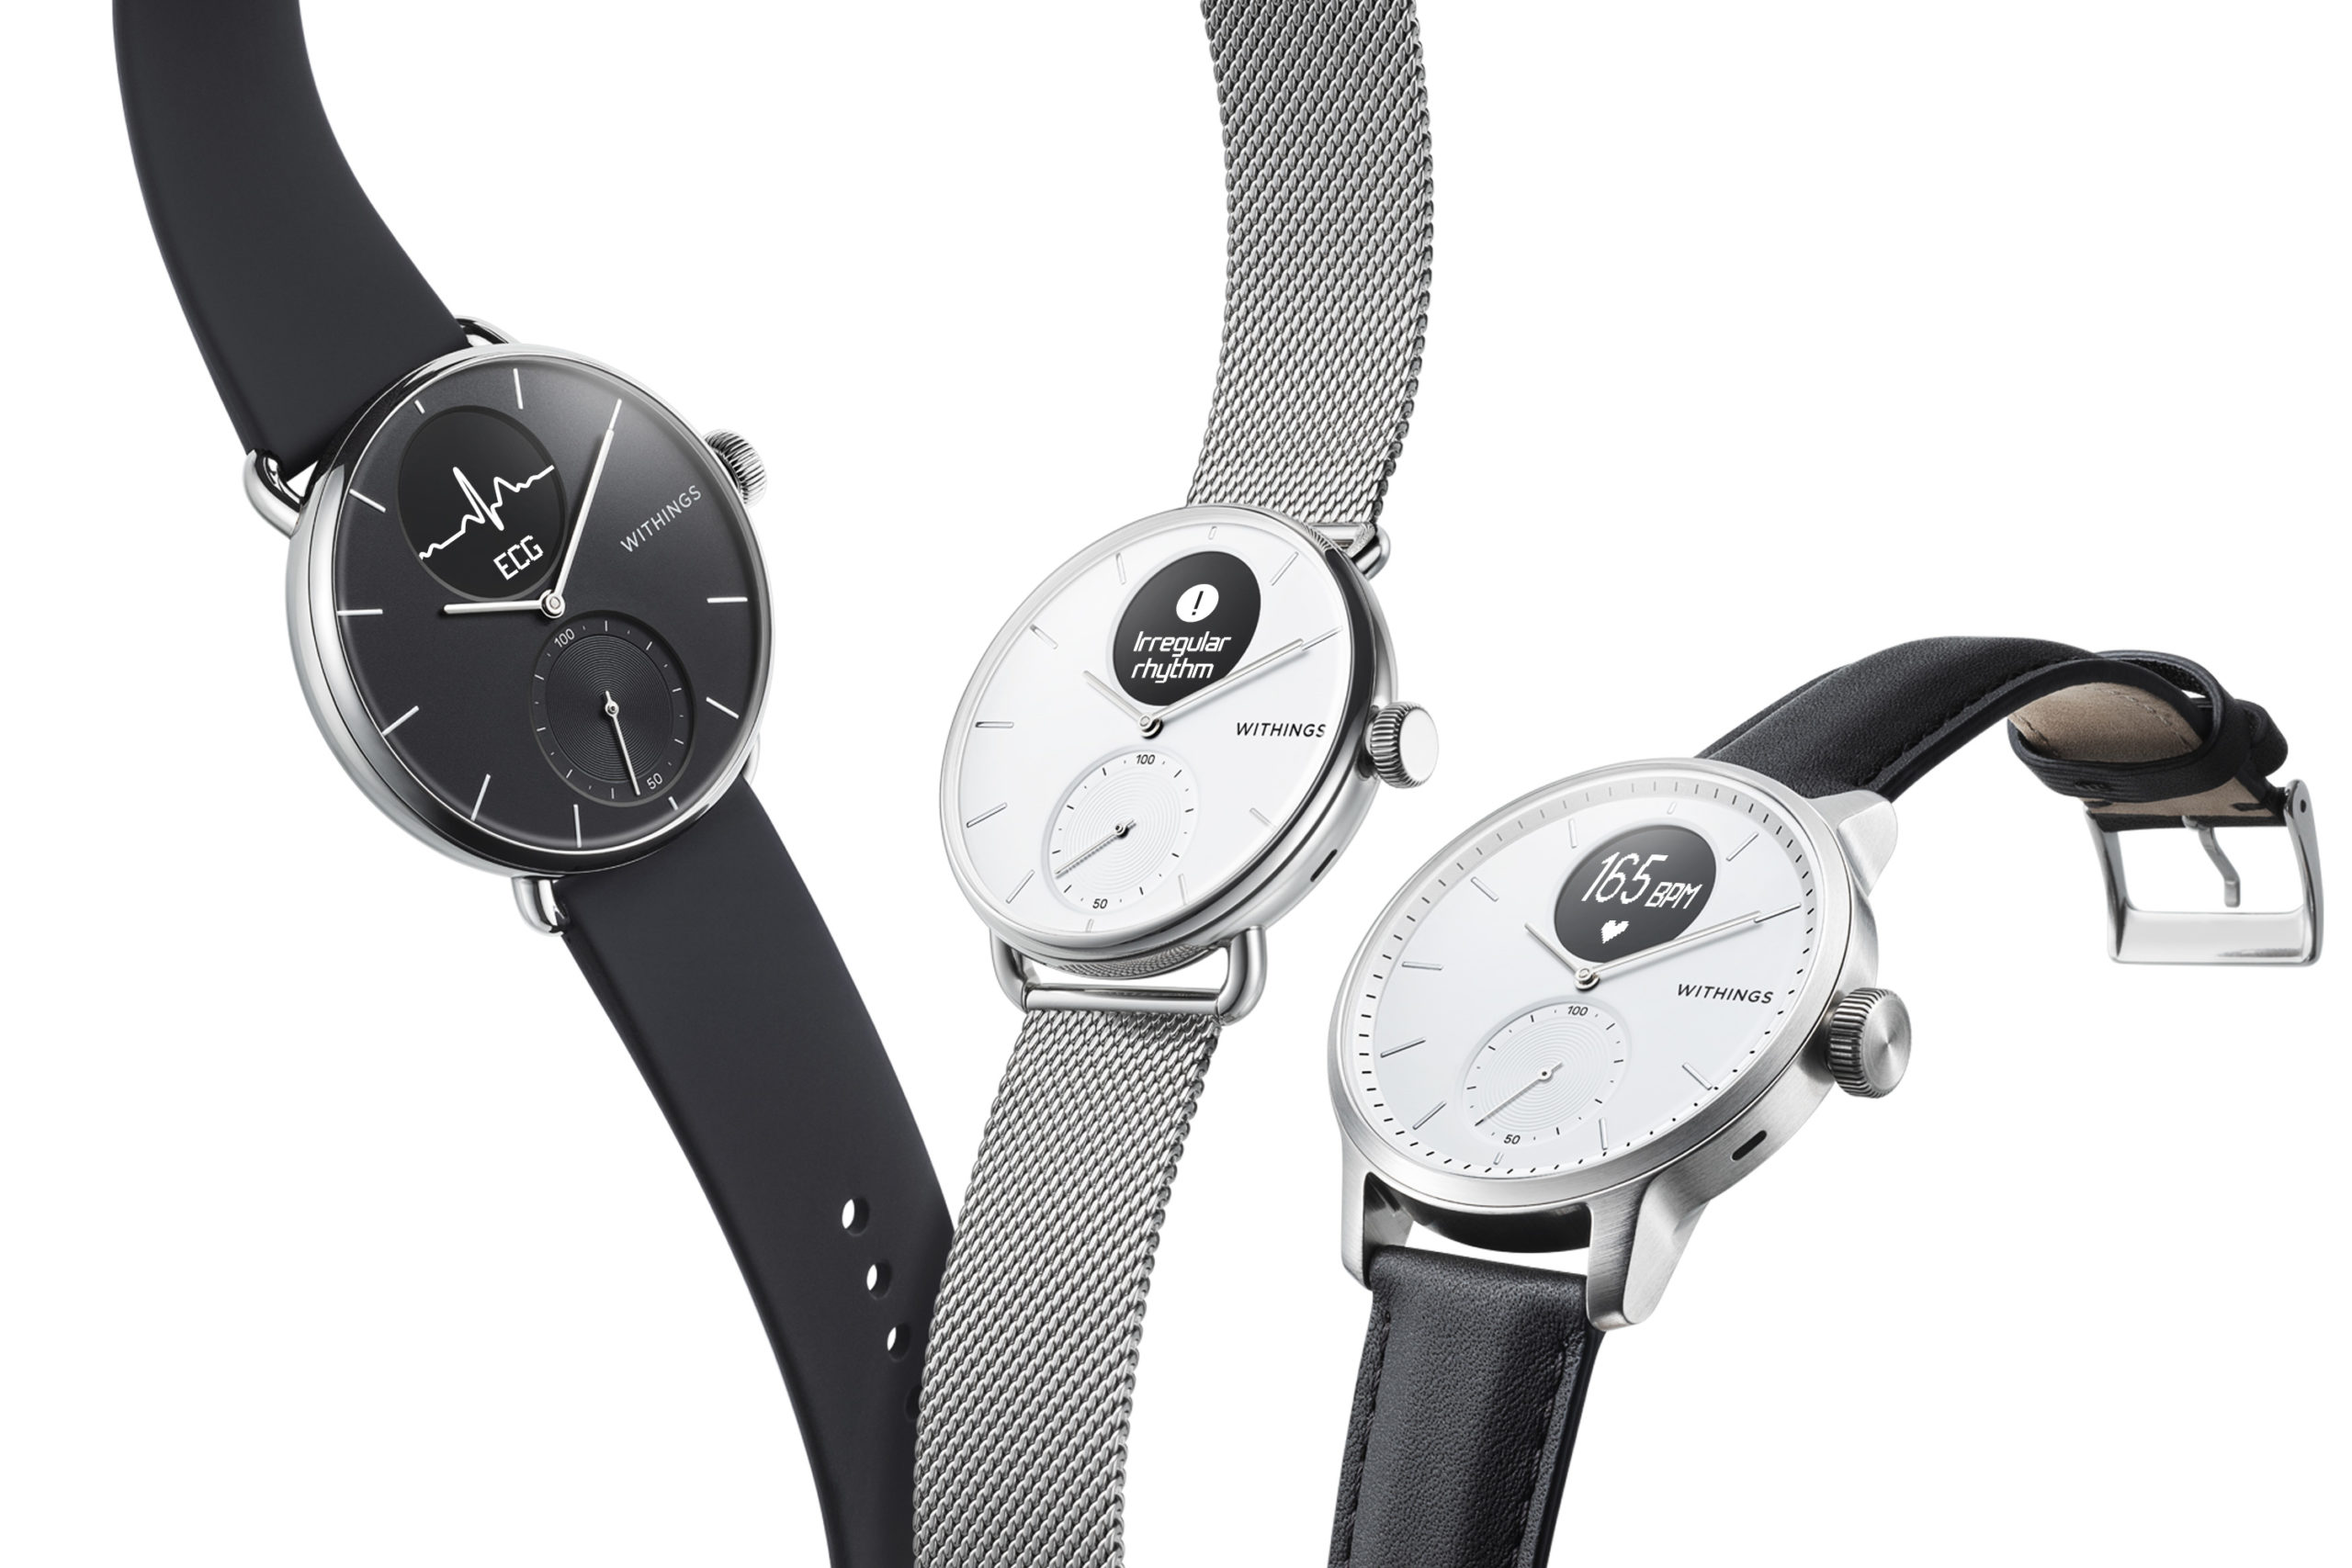 Montre Withings Scanwatch